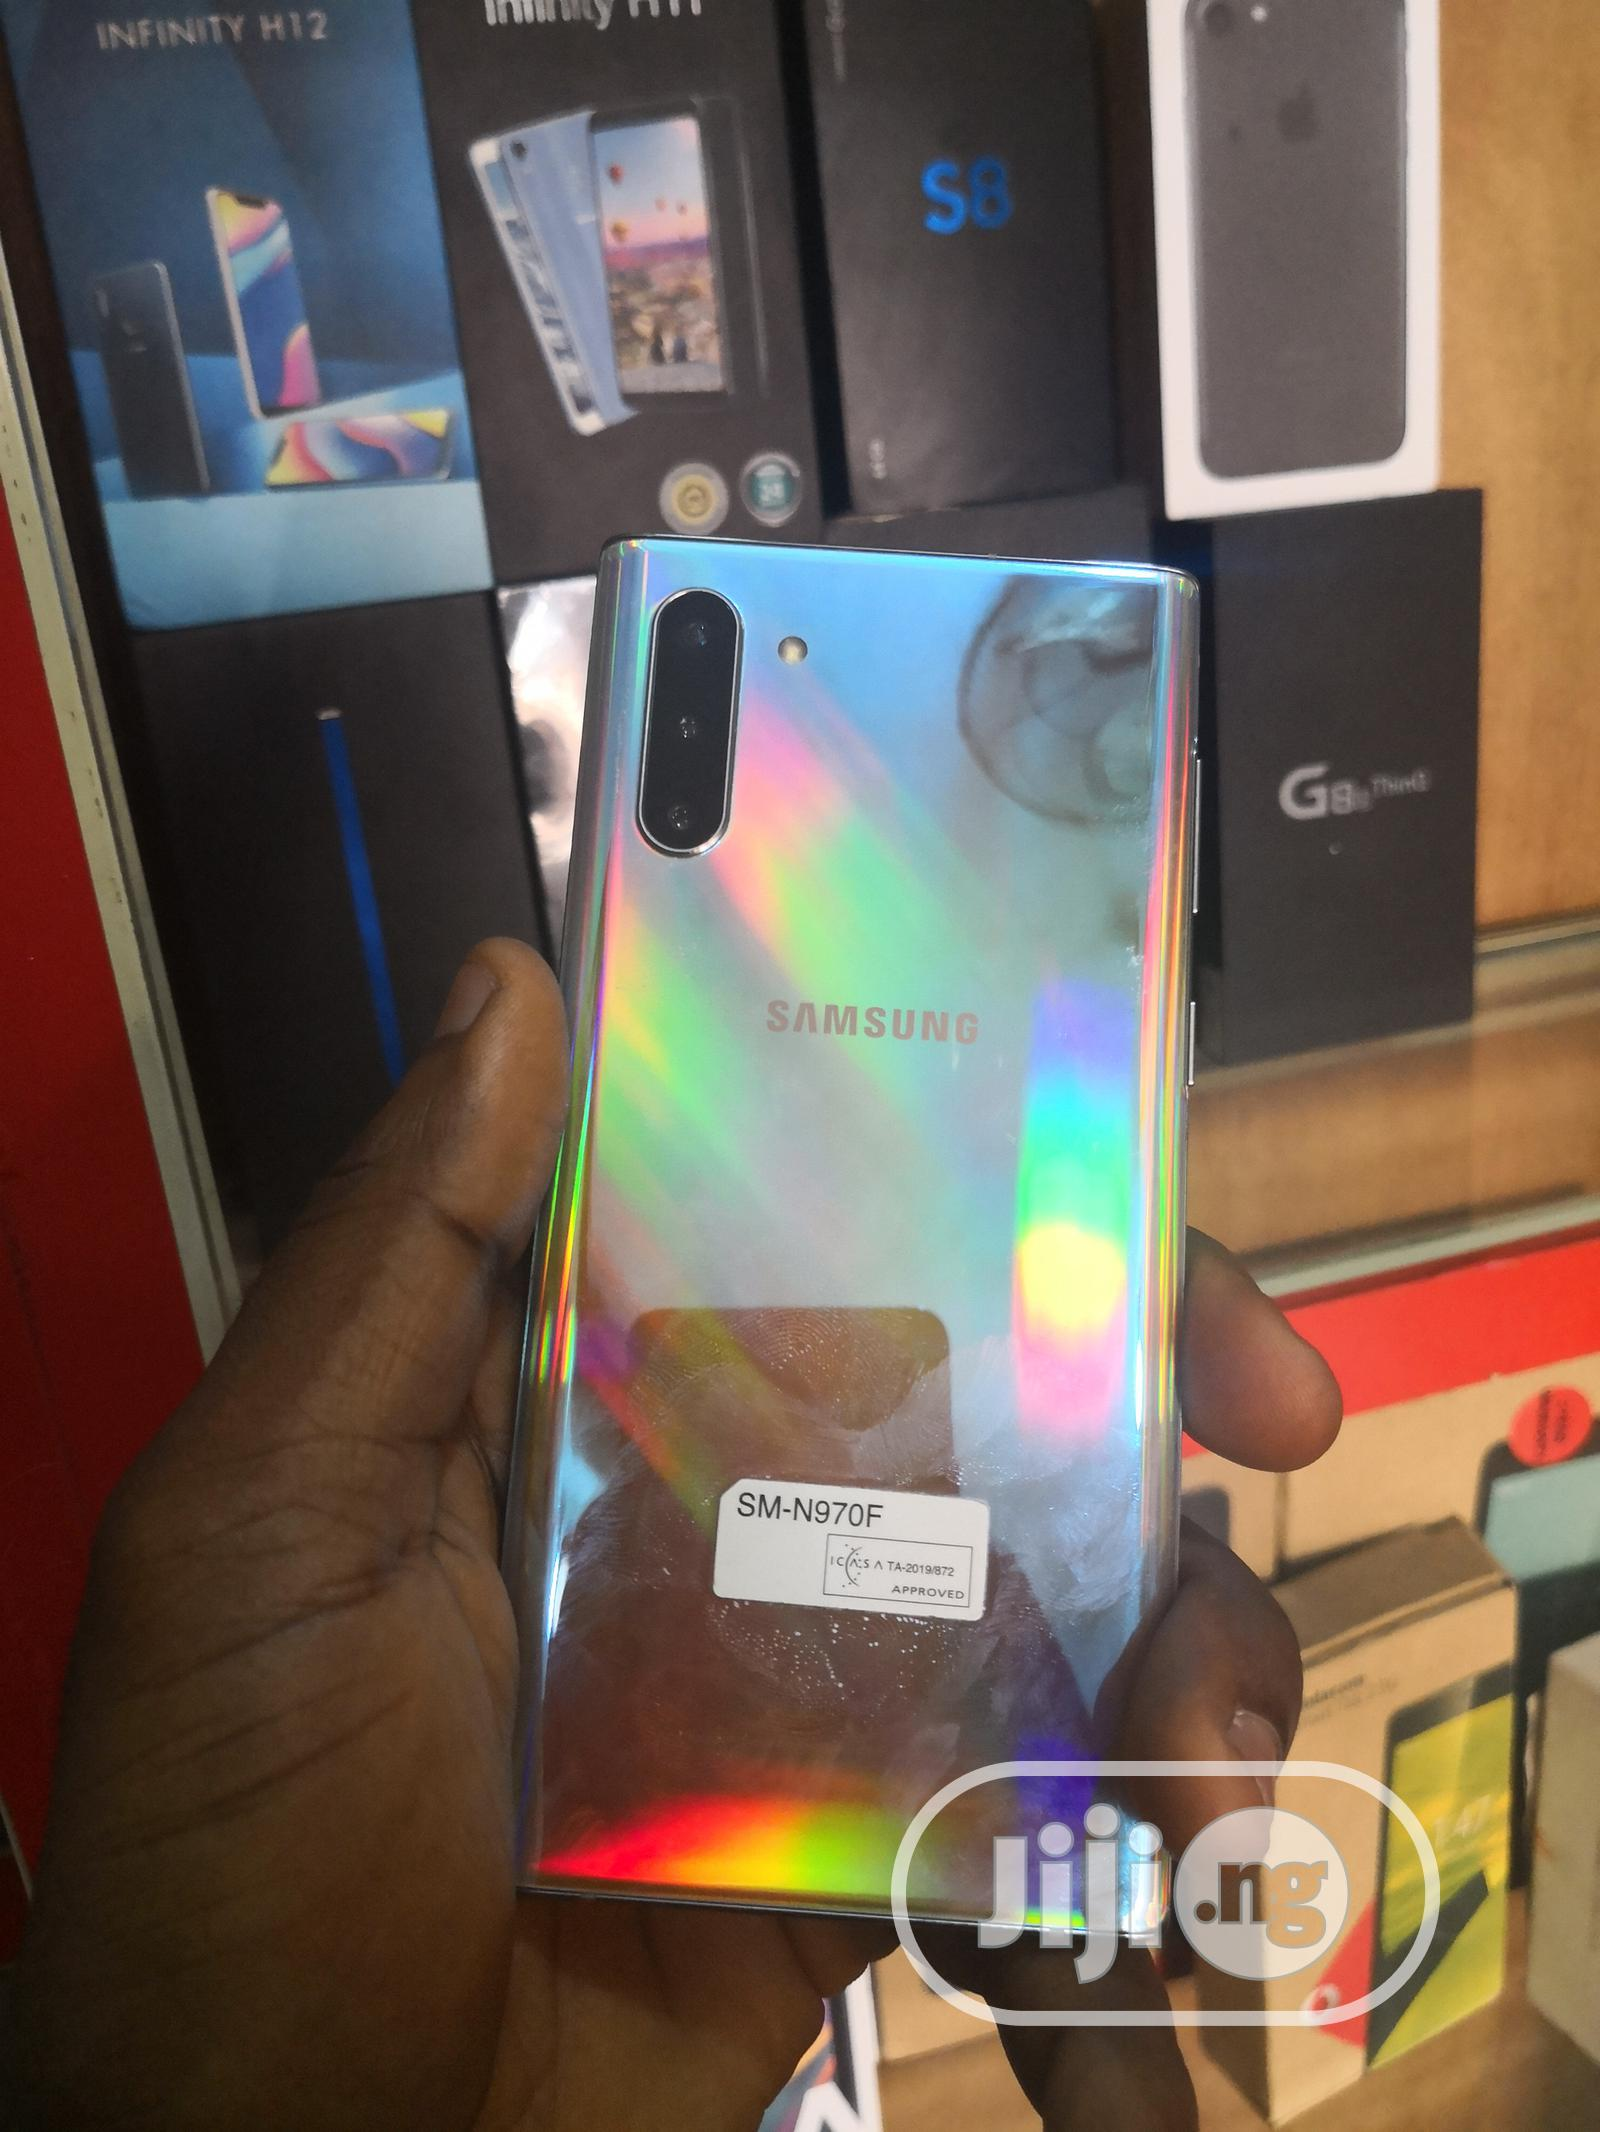 Samsung Galaxy Note 10 256 GB | Mobile Phones for sale in Ikeja, Lagos State, Nigeria